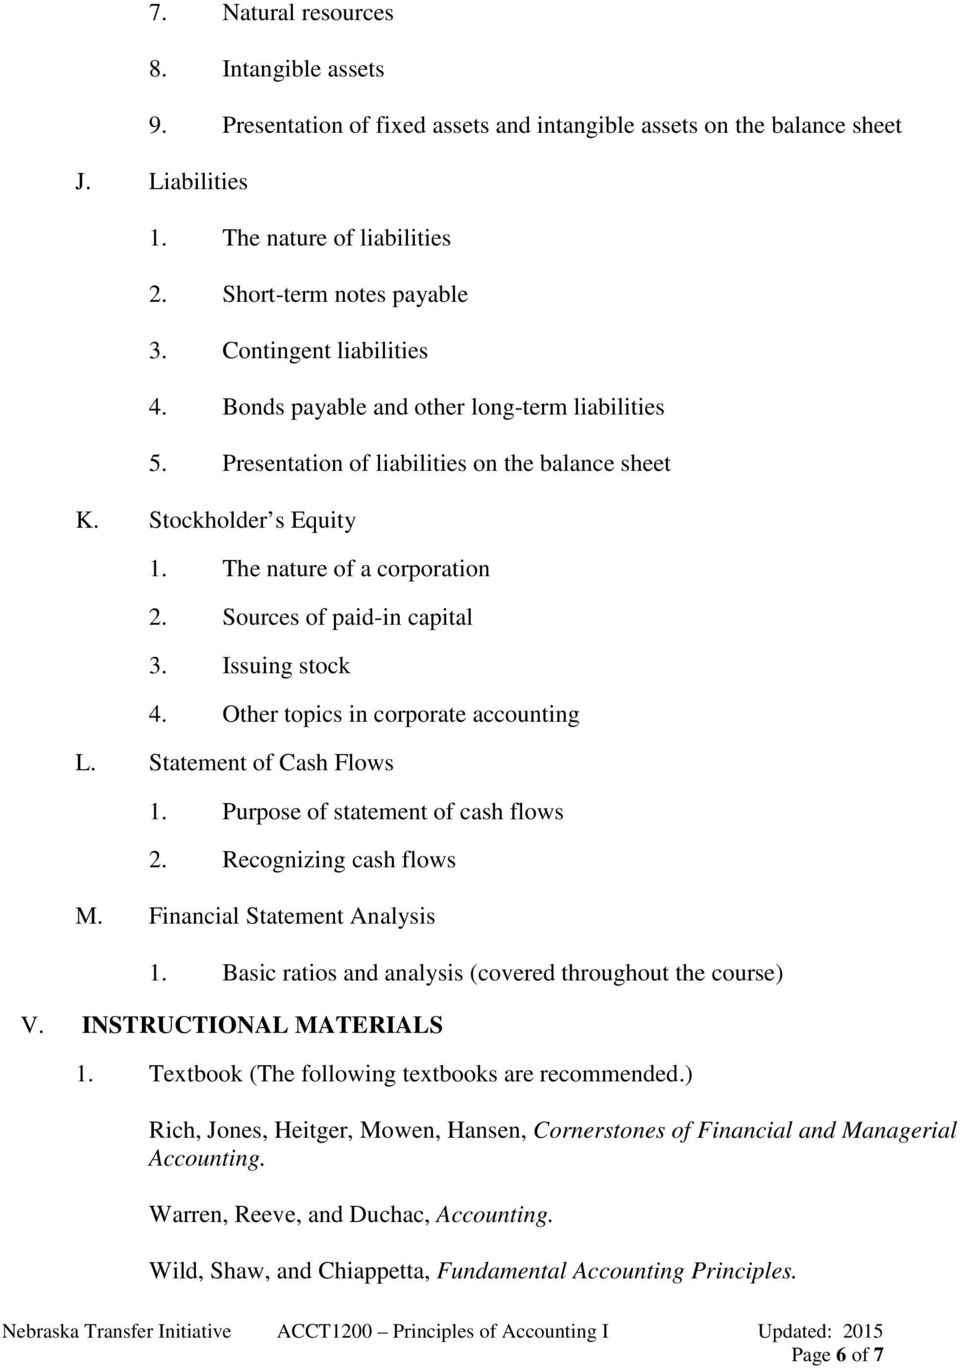 Sources of paid-in capital 3. Issuing stock 4. Other topics in corporate accounting L. Statement of Cash Flows 1. Purpose of statement of cash flows 2. Recognizing cash flows M.